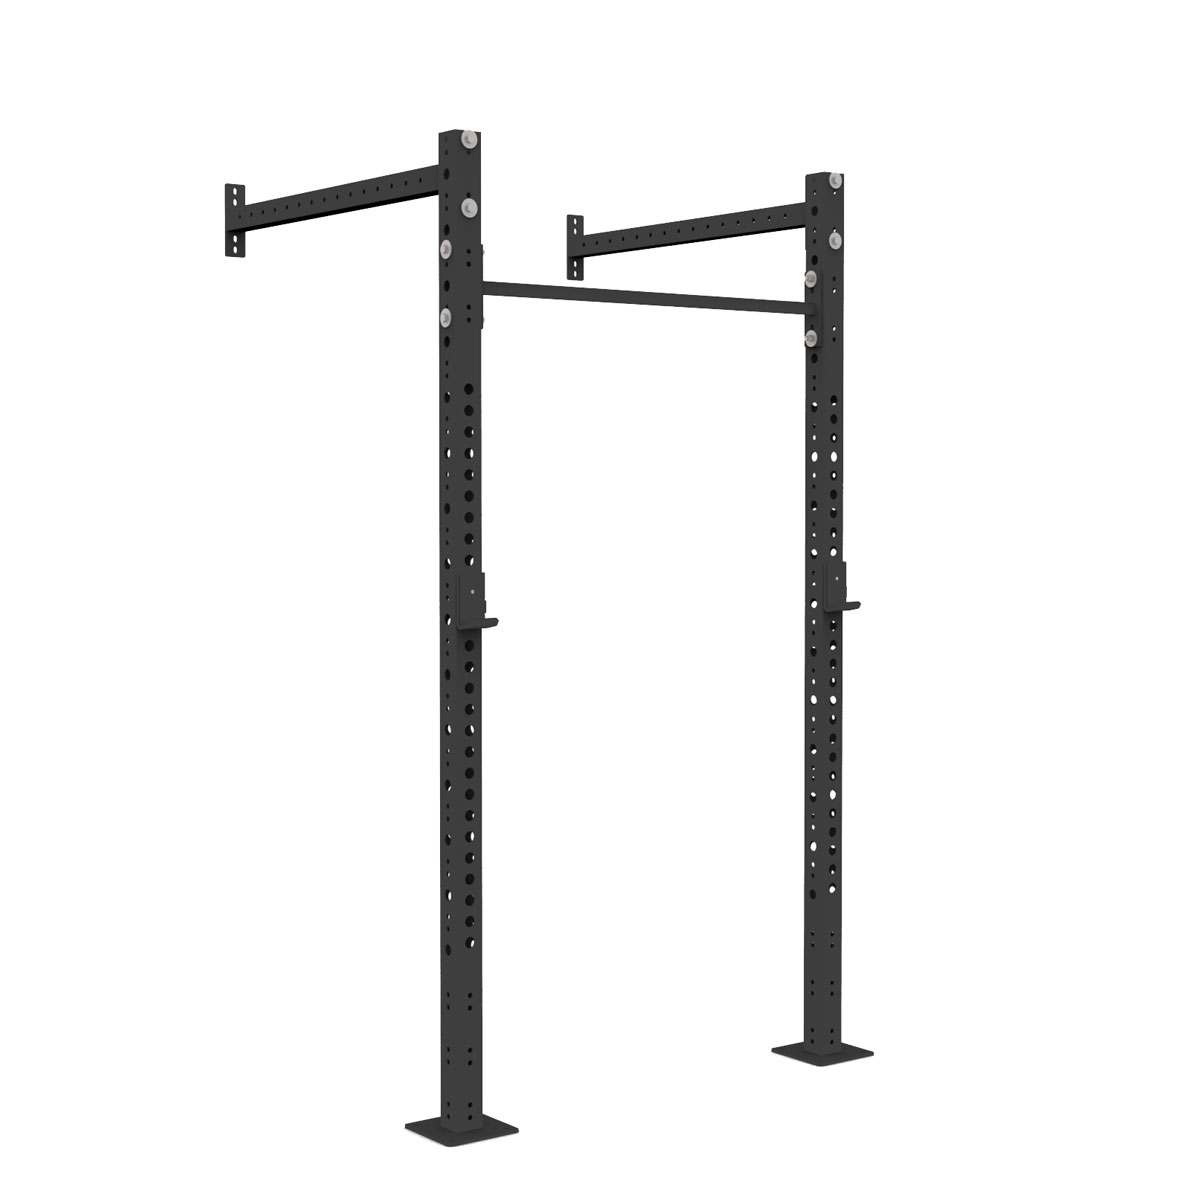 4ft x 4ft Wall Mount Pull-Up Rig